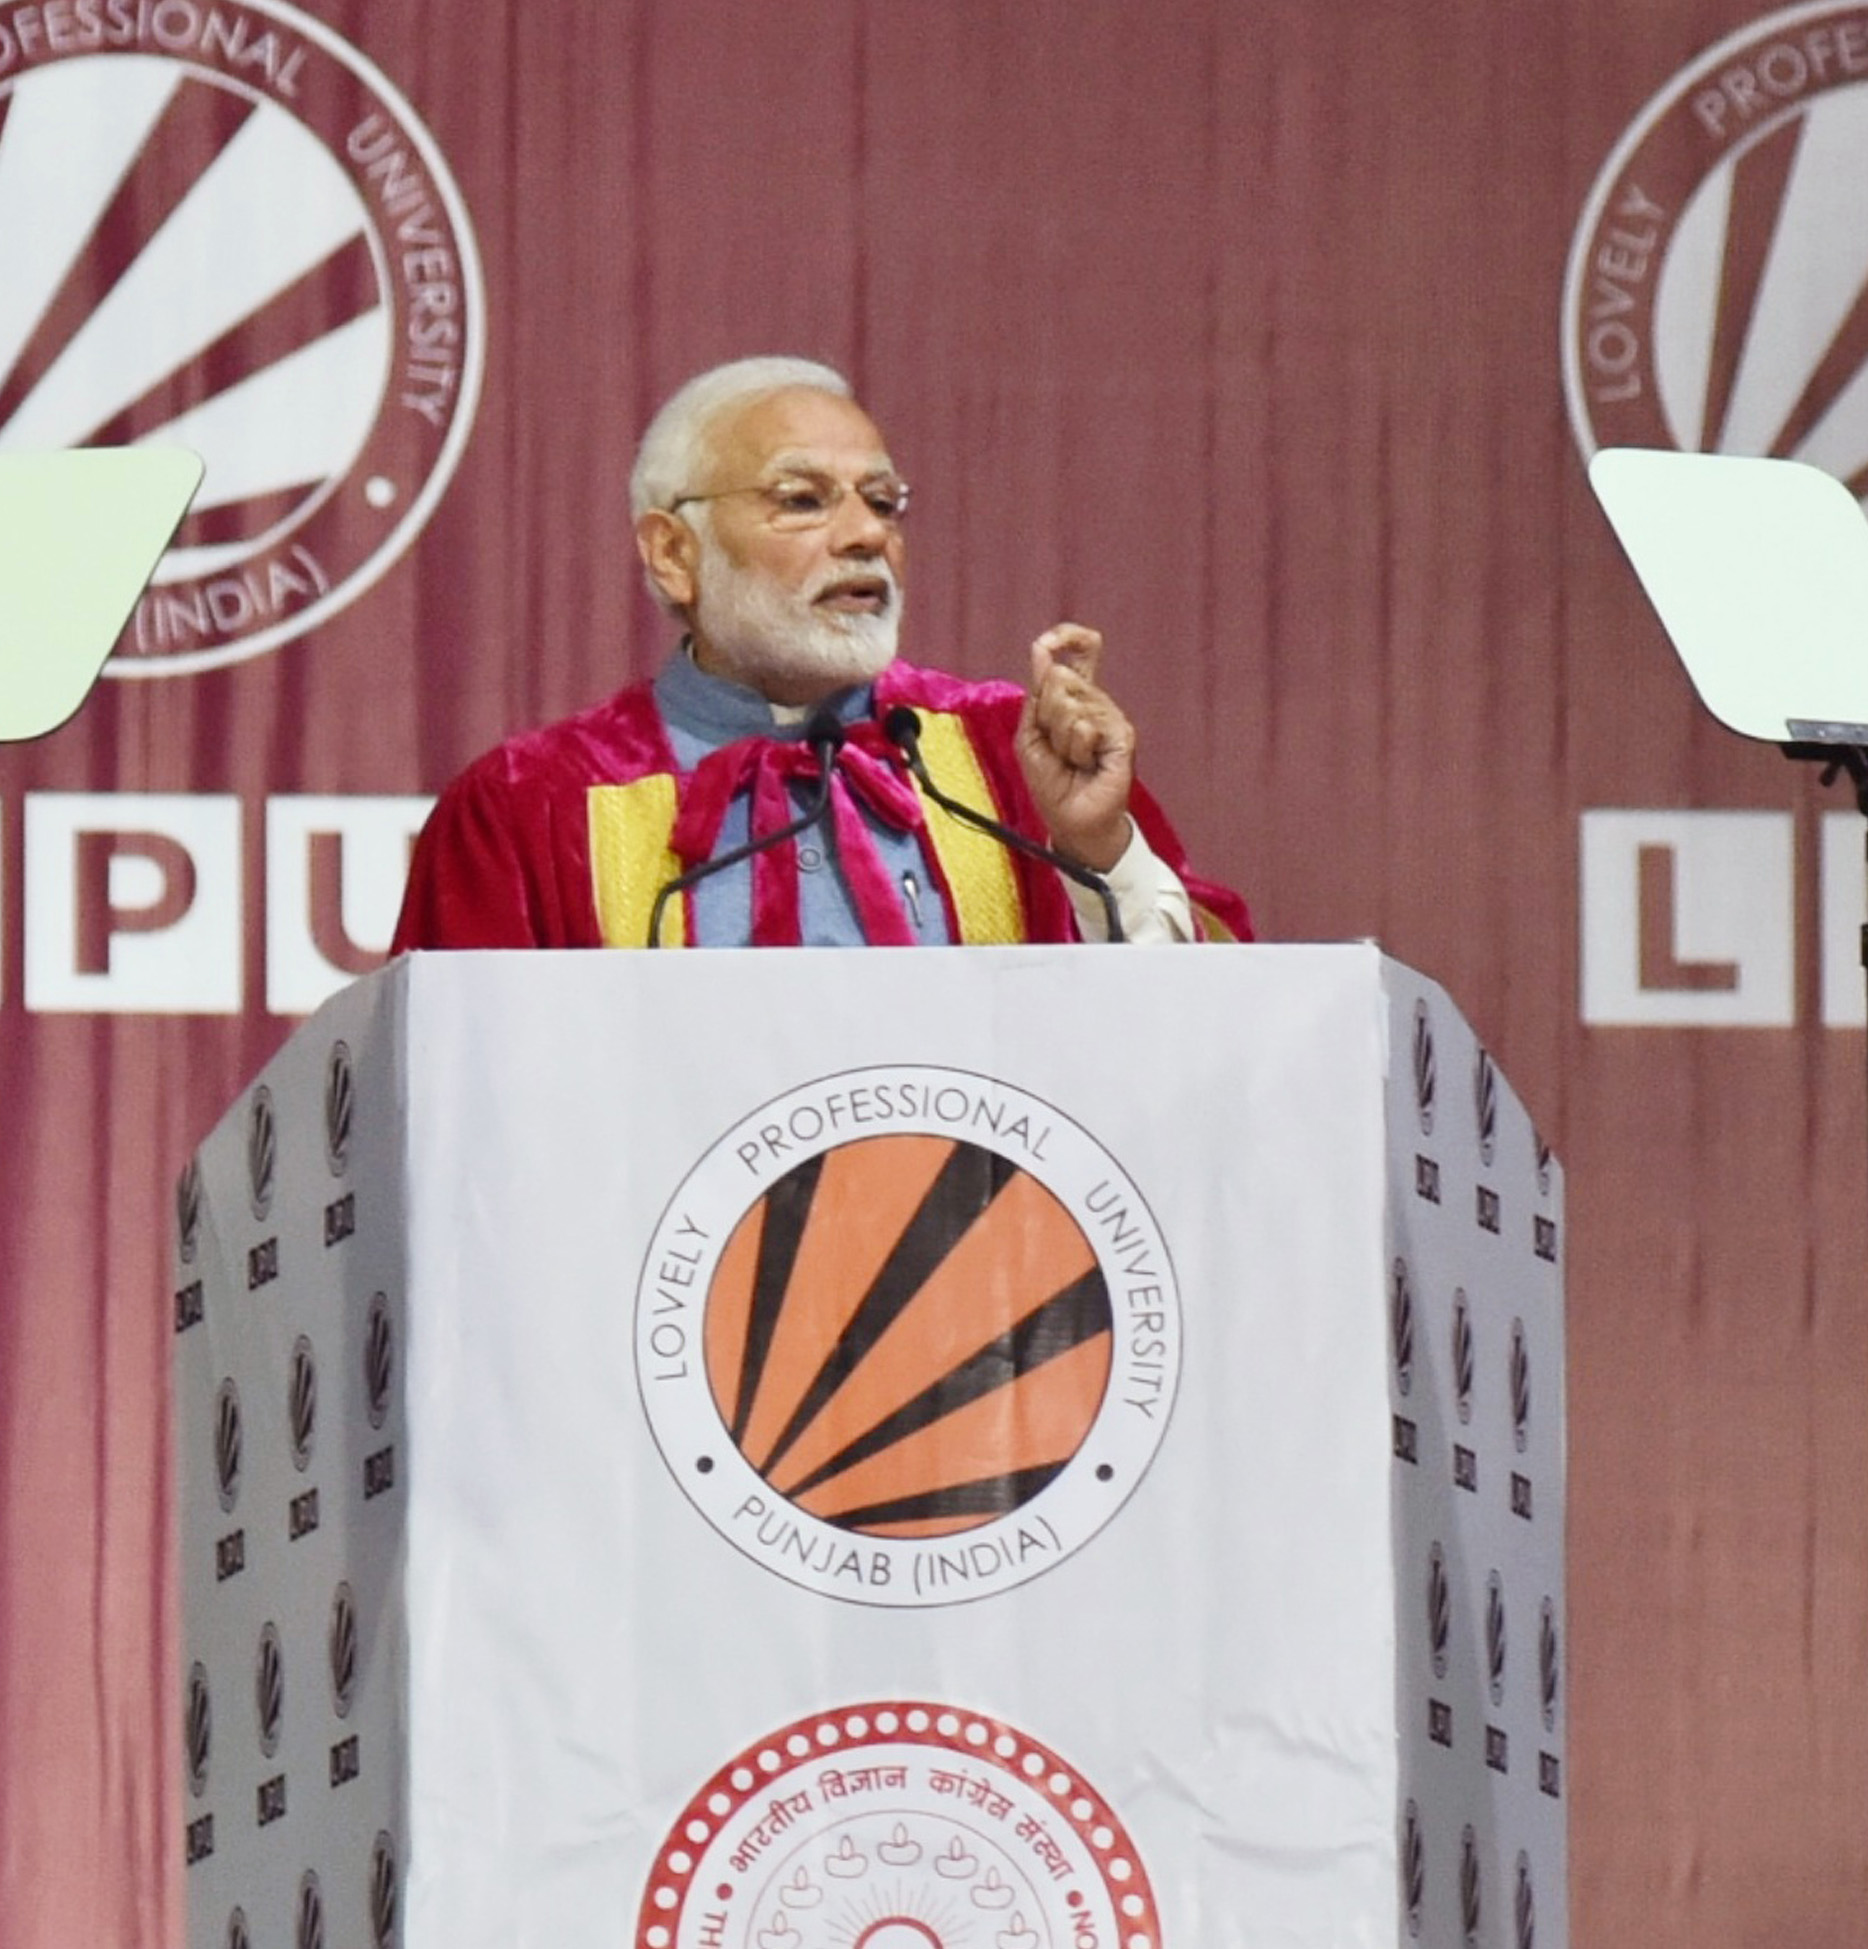 PM's inaugural address at the 106th Indian Science Congress